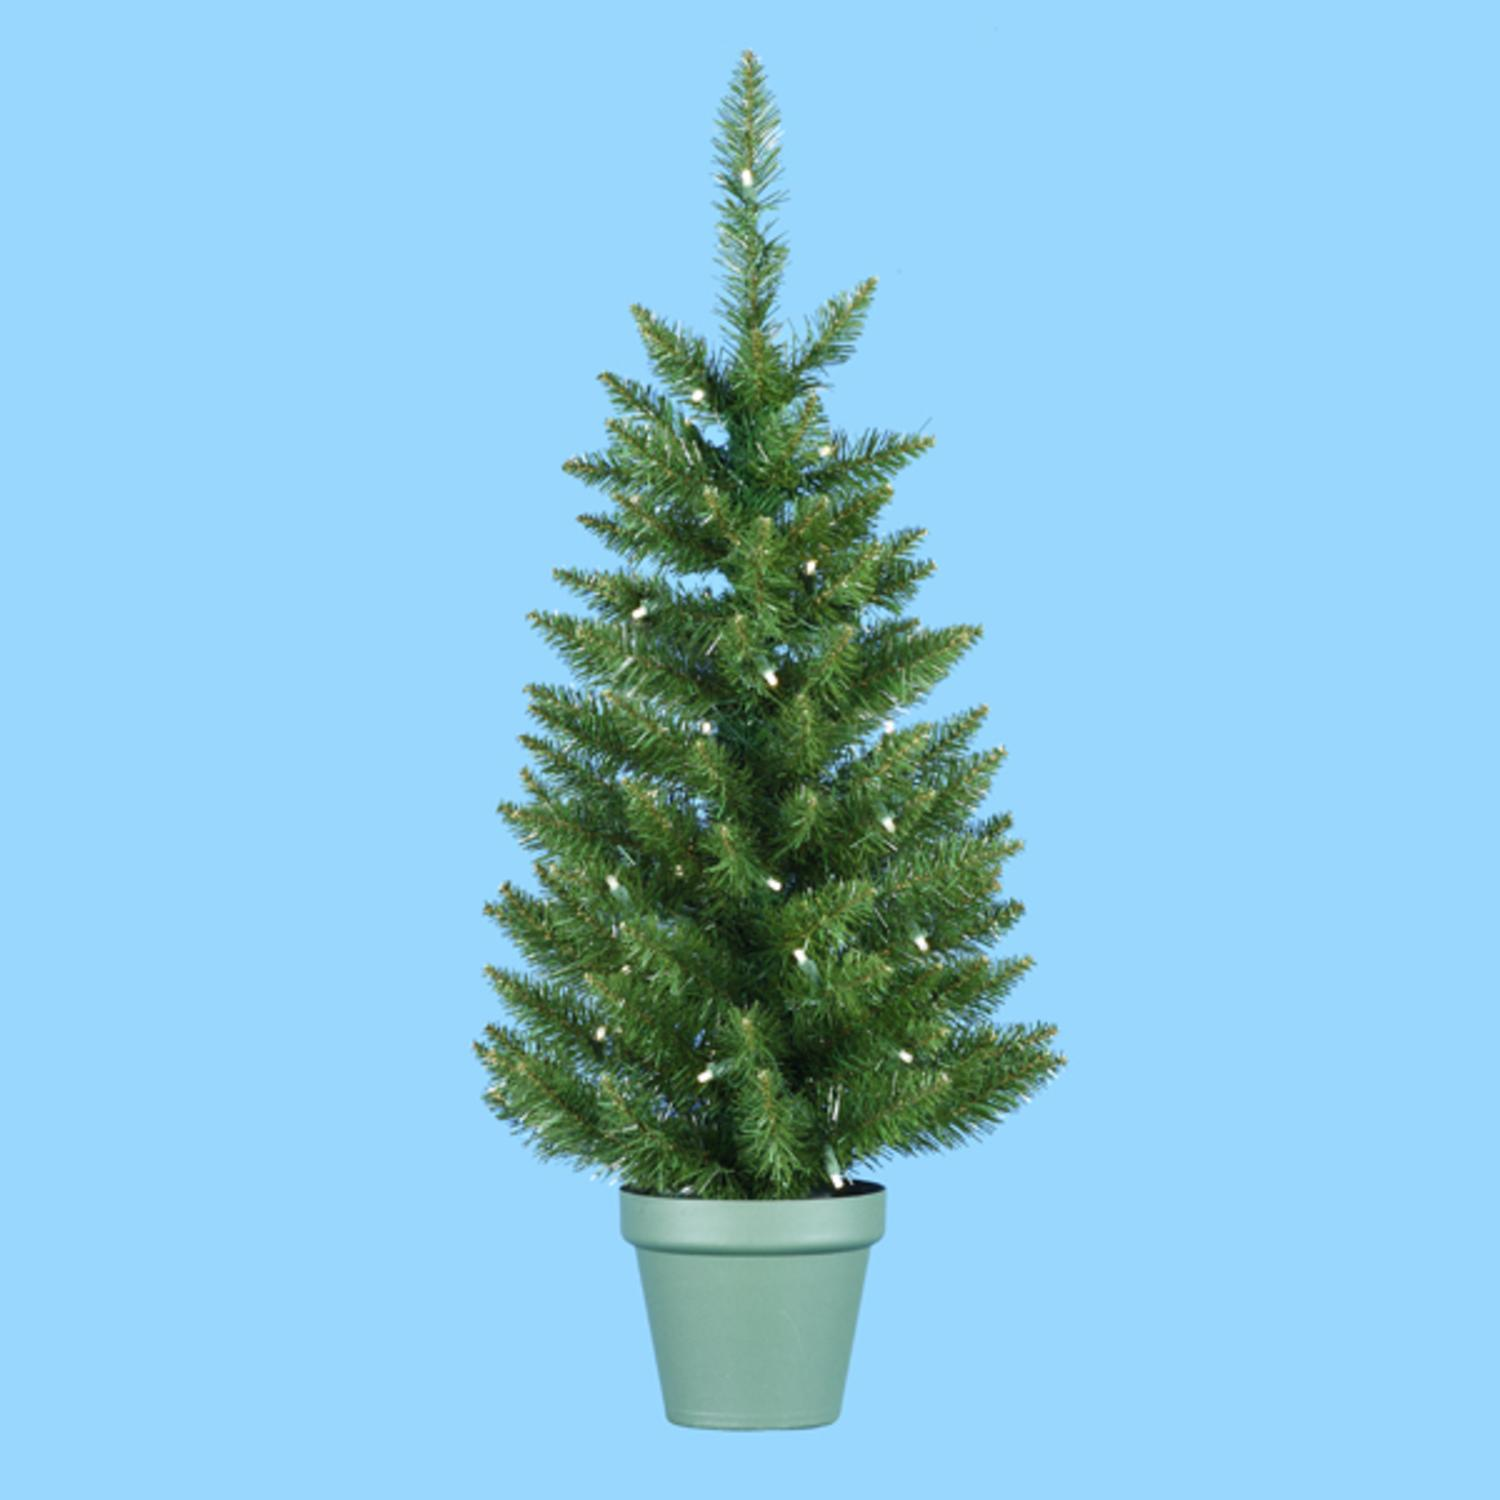 Potted Christmas Trees For Sale: 3' Pre-Lit Potted Artificial Pine Christmas Tree